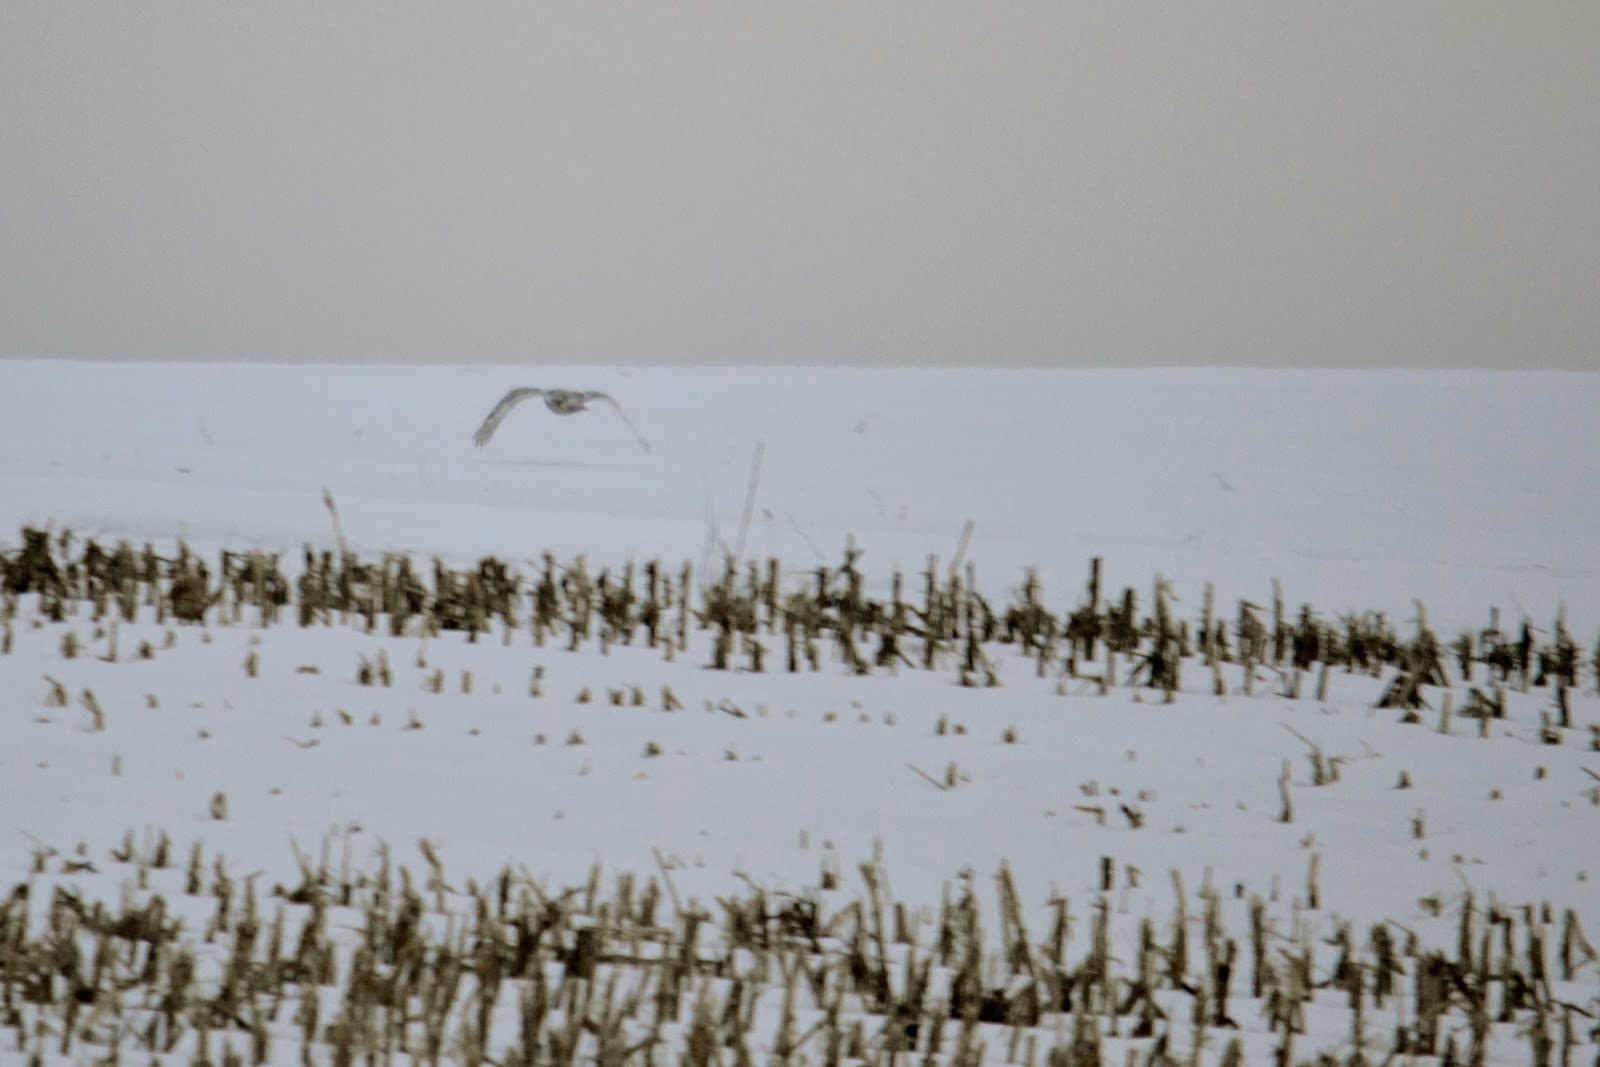 snowy owl flying low across a snow-covered field